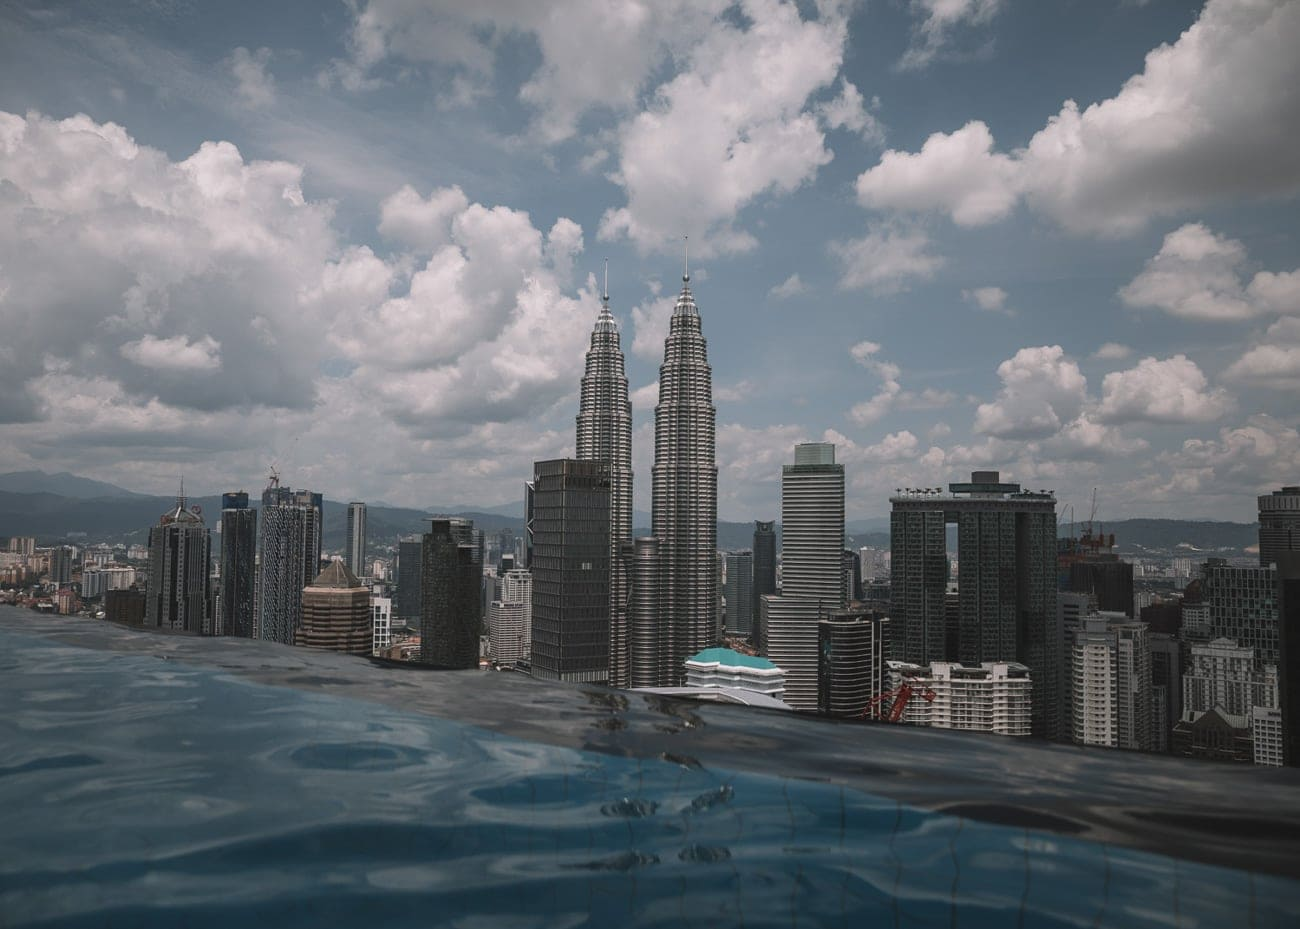 The Face Suites Kuala Lumpur – Infinity Pool & Apartment